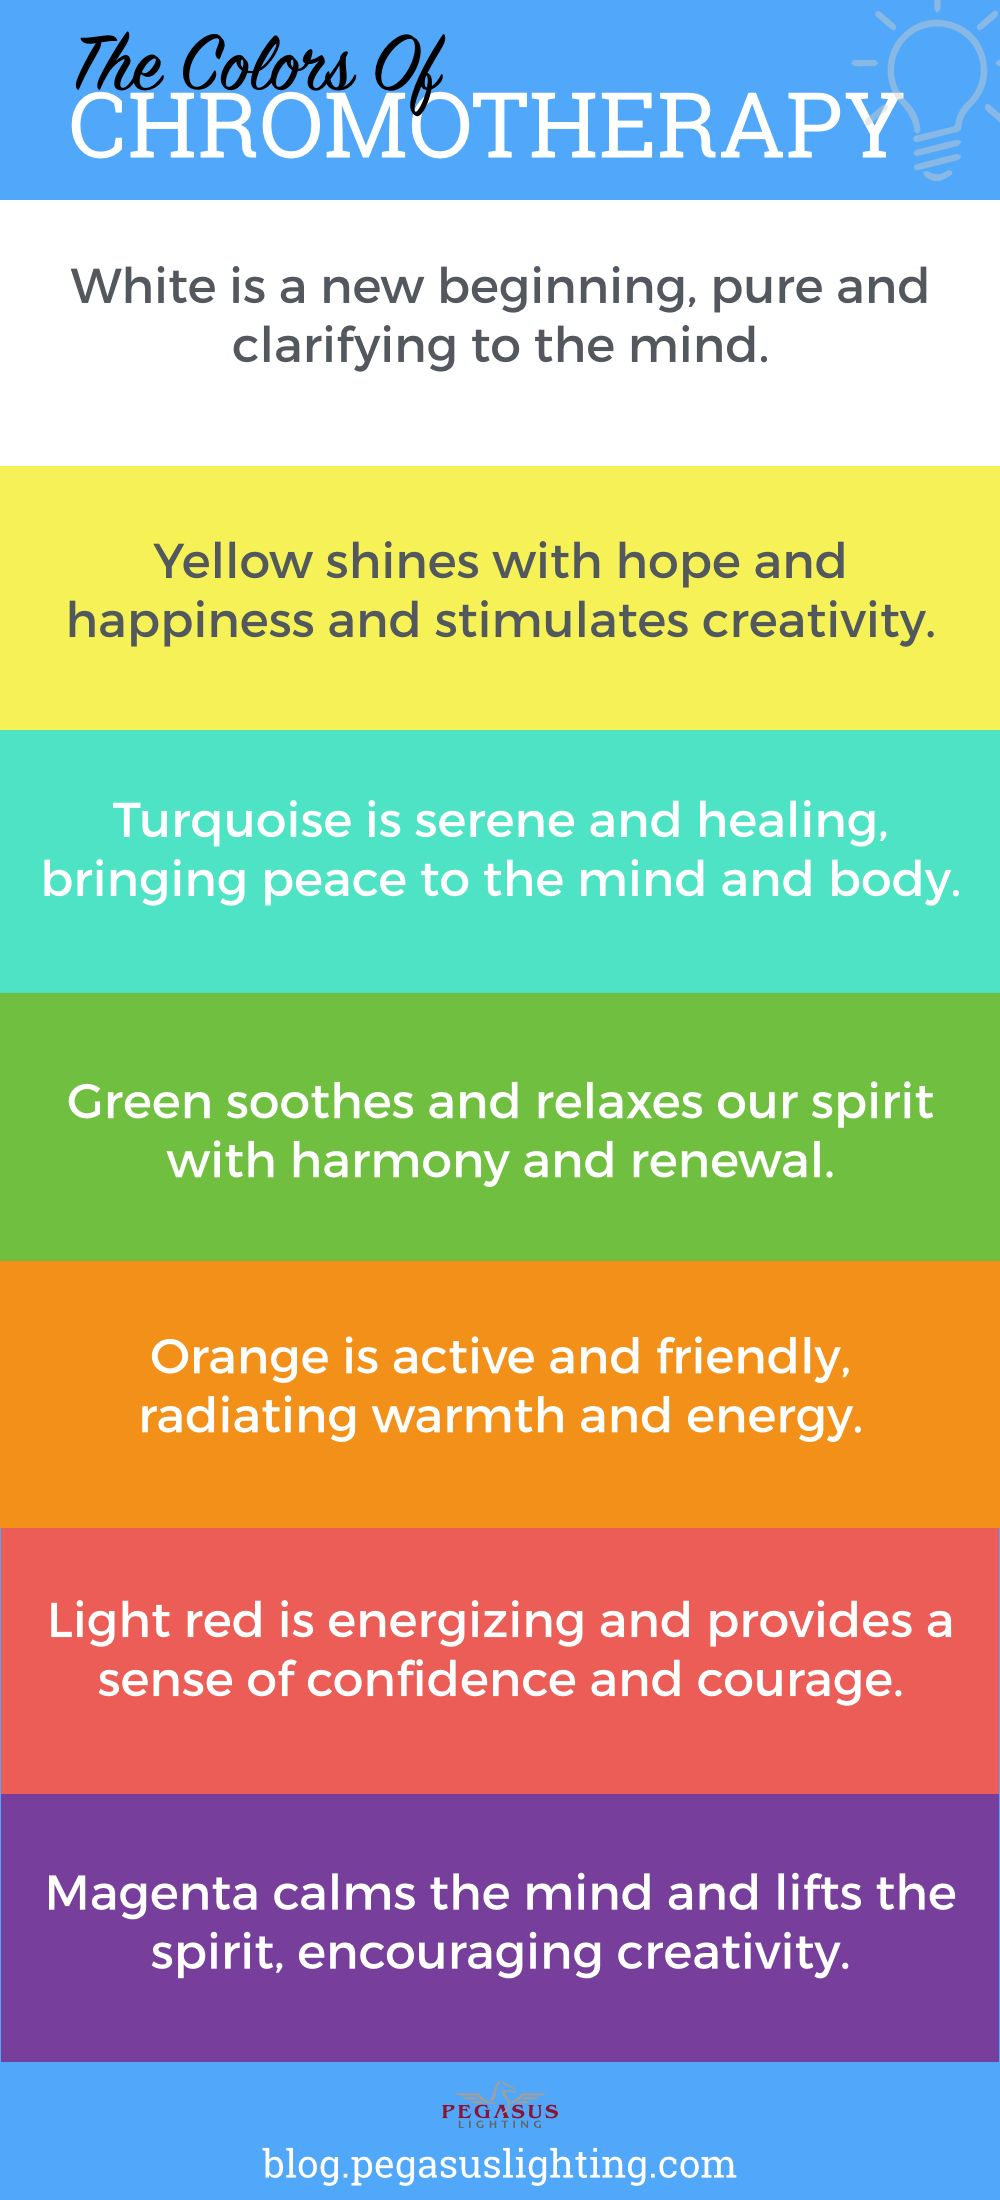 The Healing Colors Of Chromotherapy Infographic